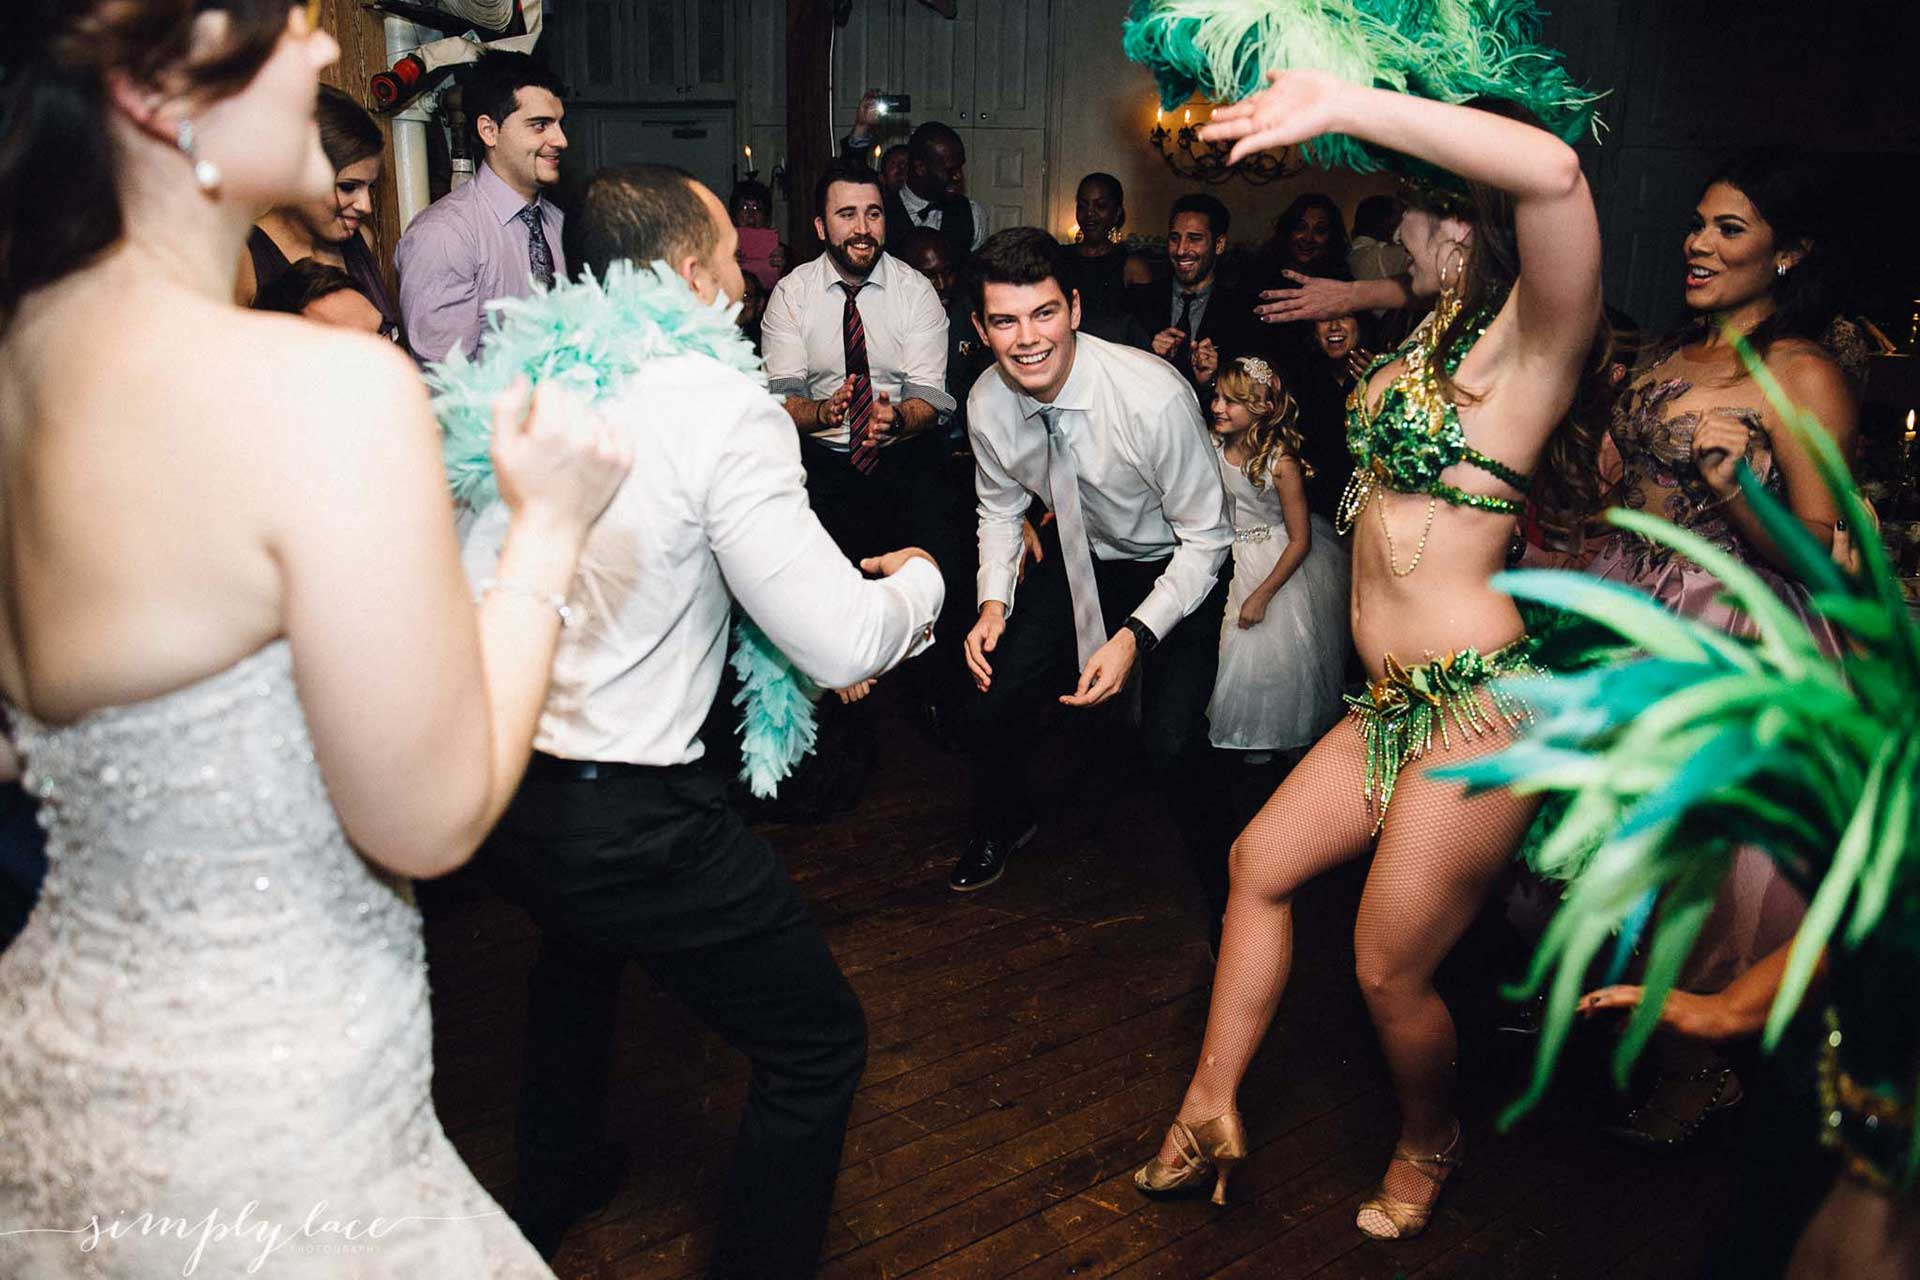 Wedding Venues Toronto - Wedding Dancing - Entertainment